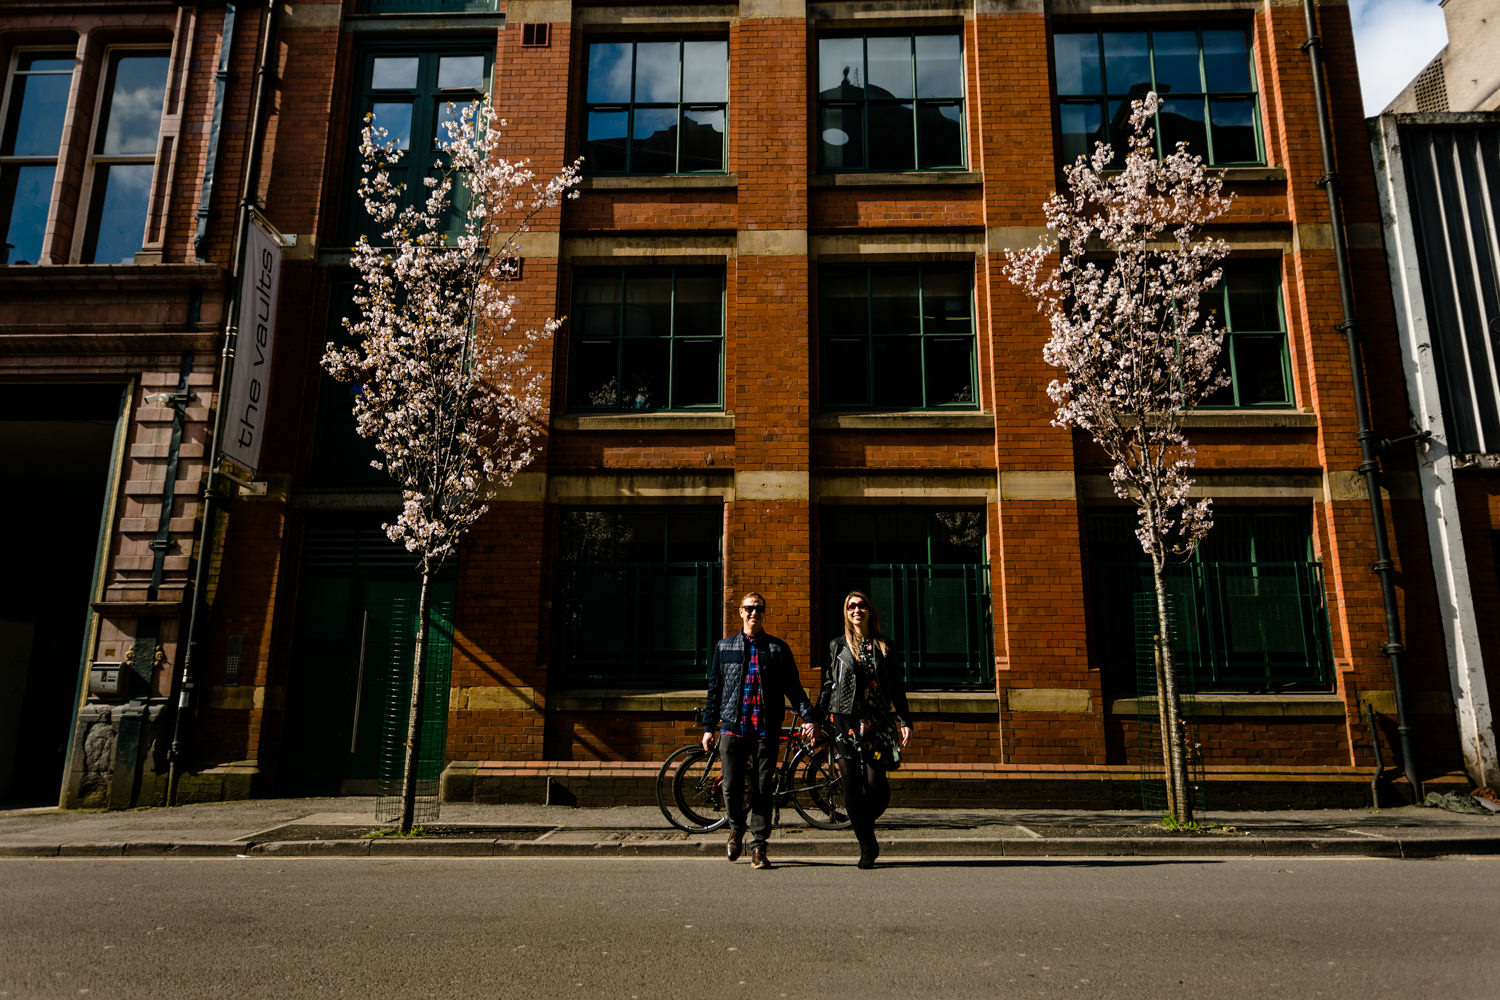 A couple cross the street in the Northern Quart of Manchester between some blossom trees.